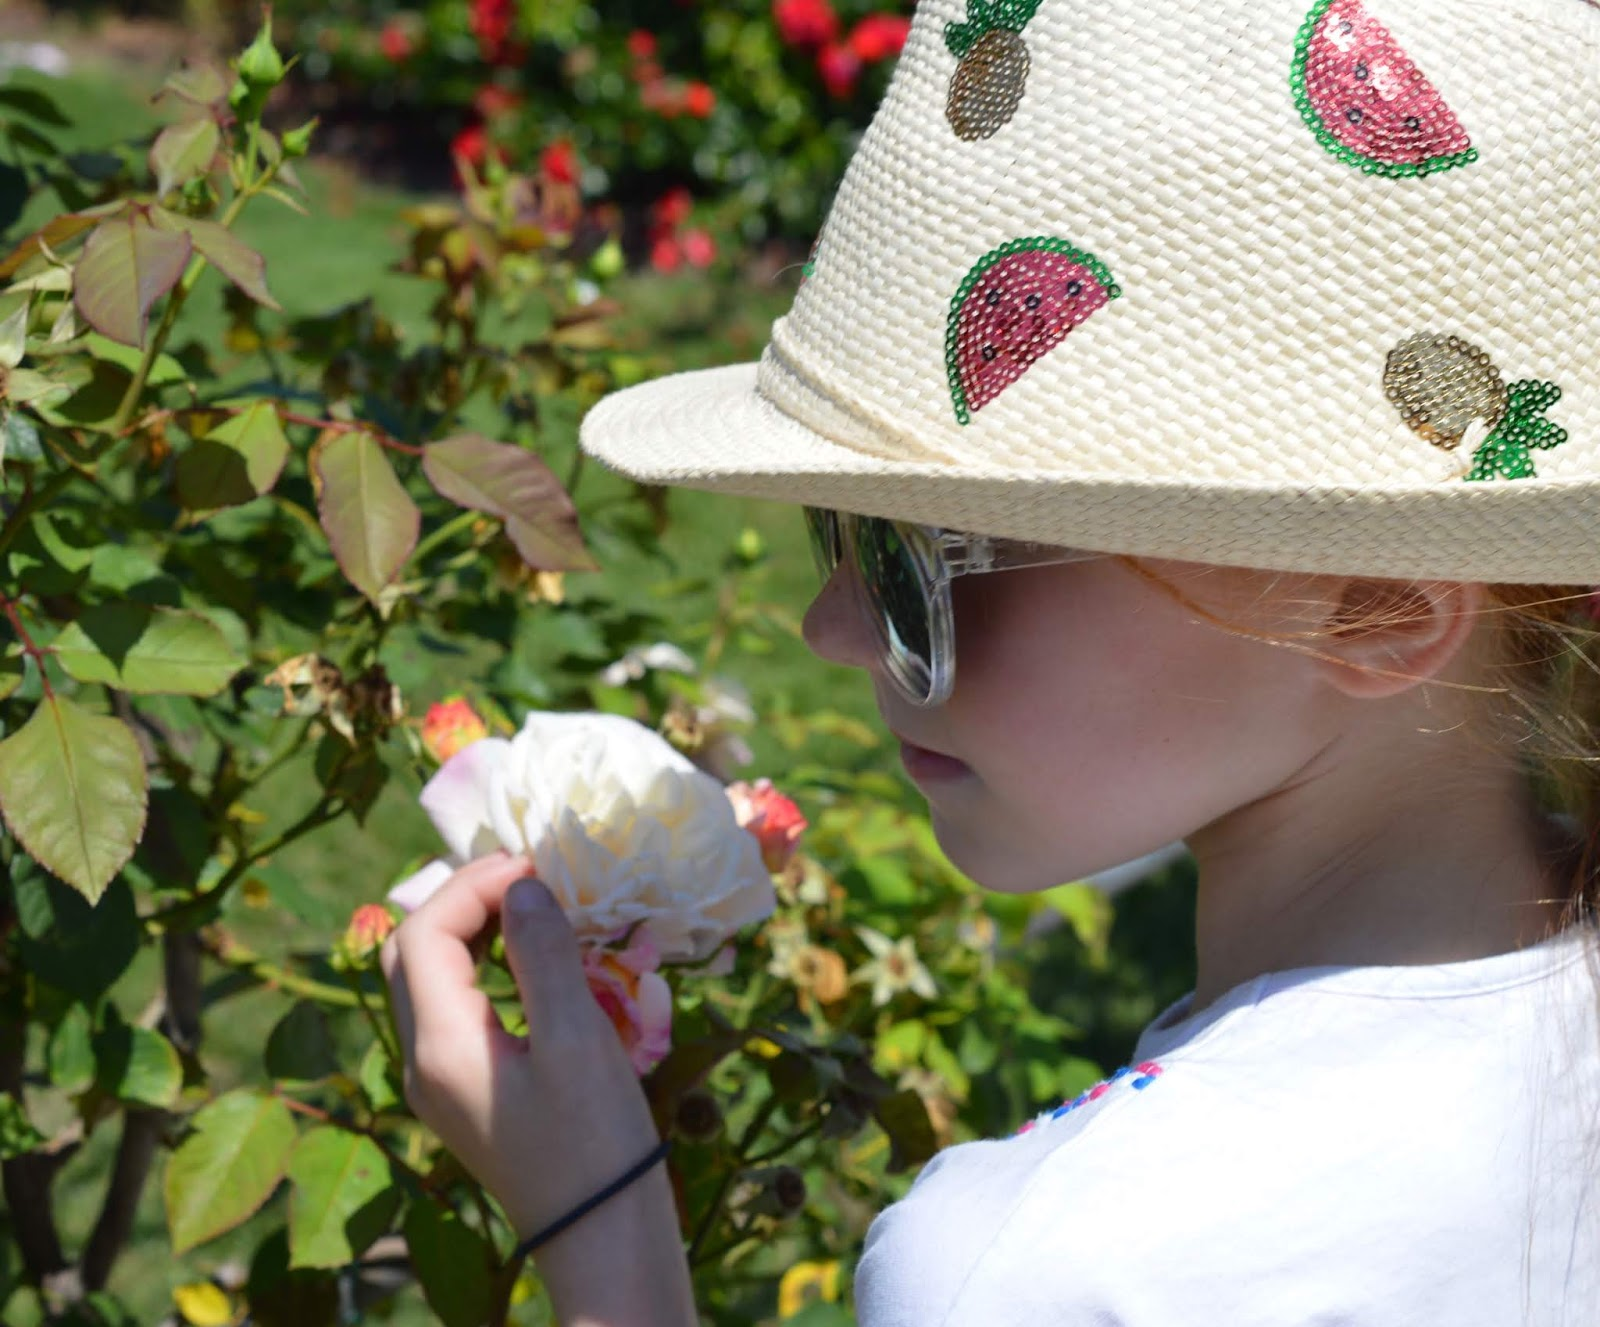 How to spend a weekend in Genoa with kids - Nervi award winning rose garden